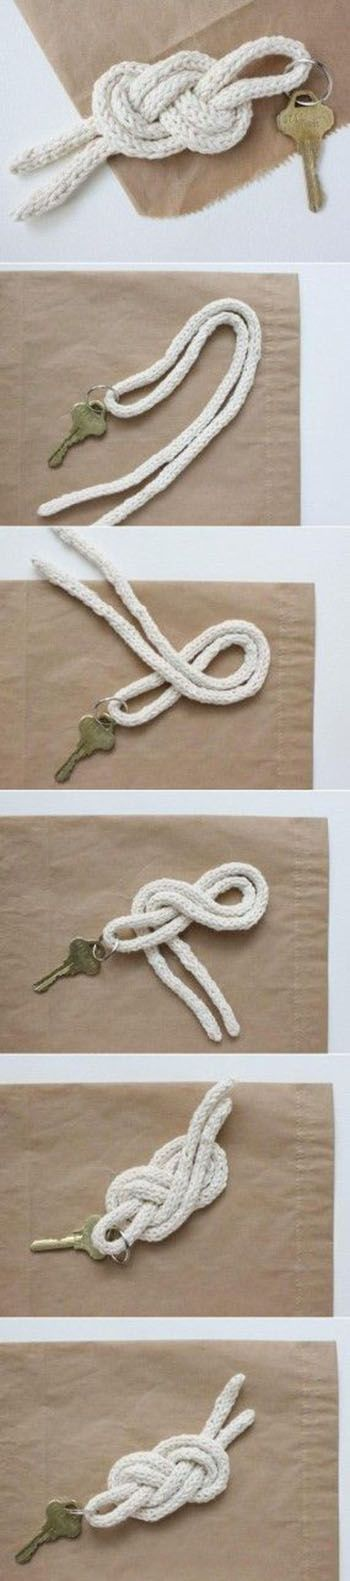 Diy Key Knot | DIY & Crafts Tutorials